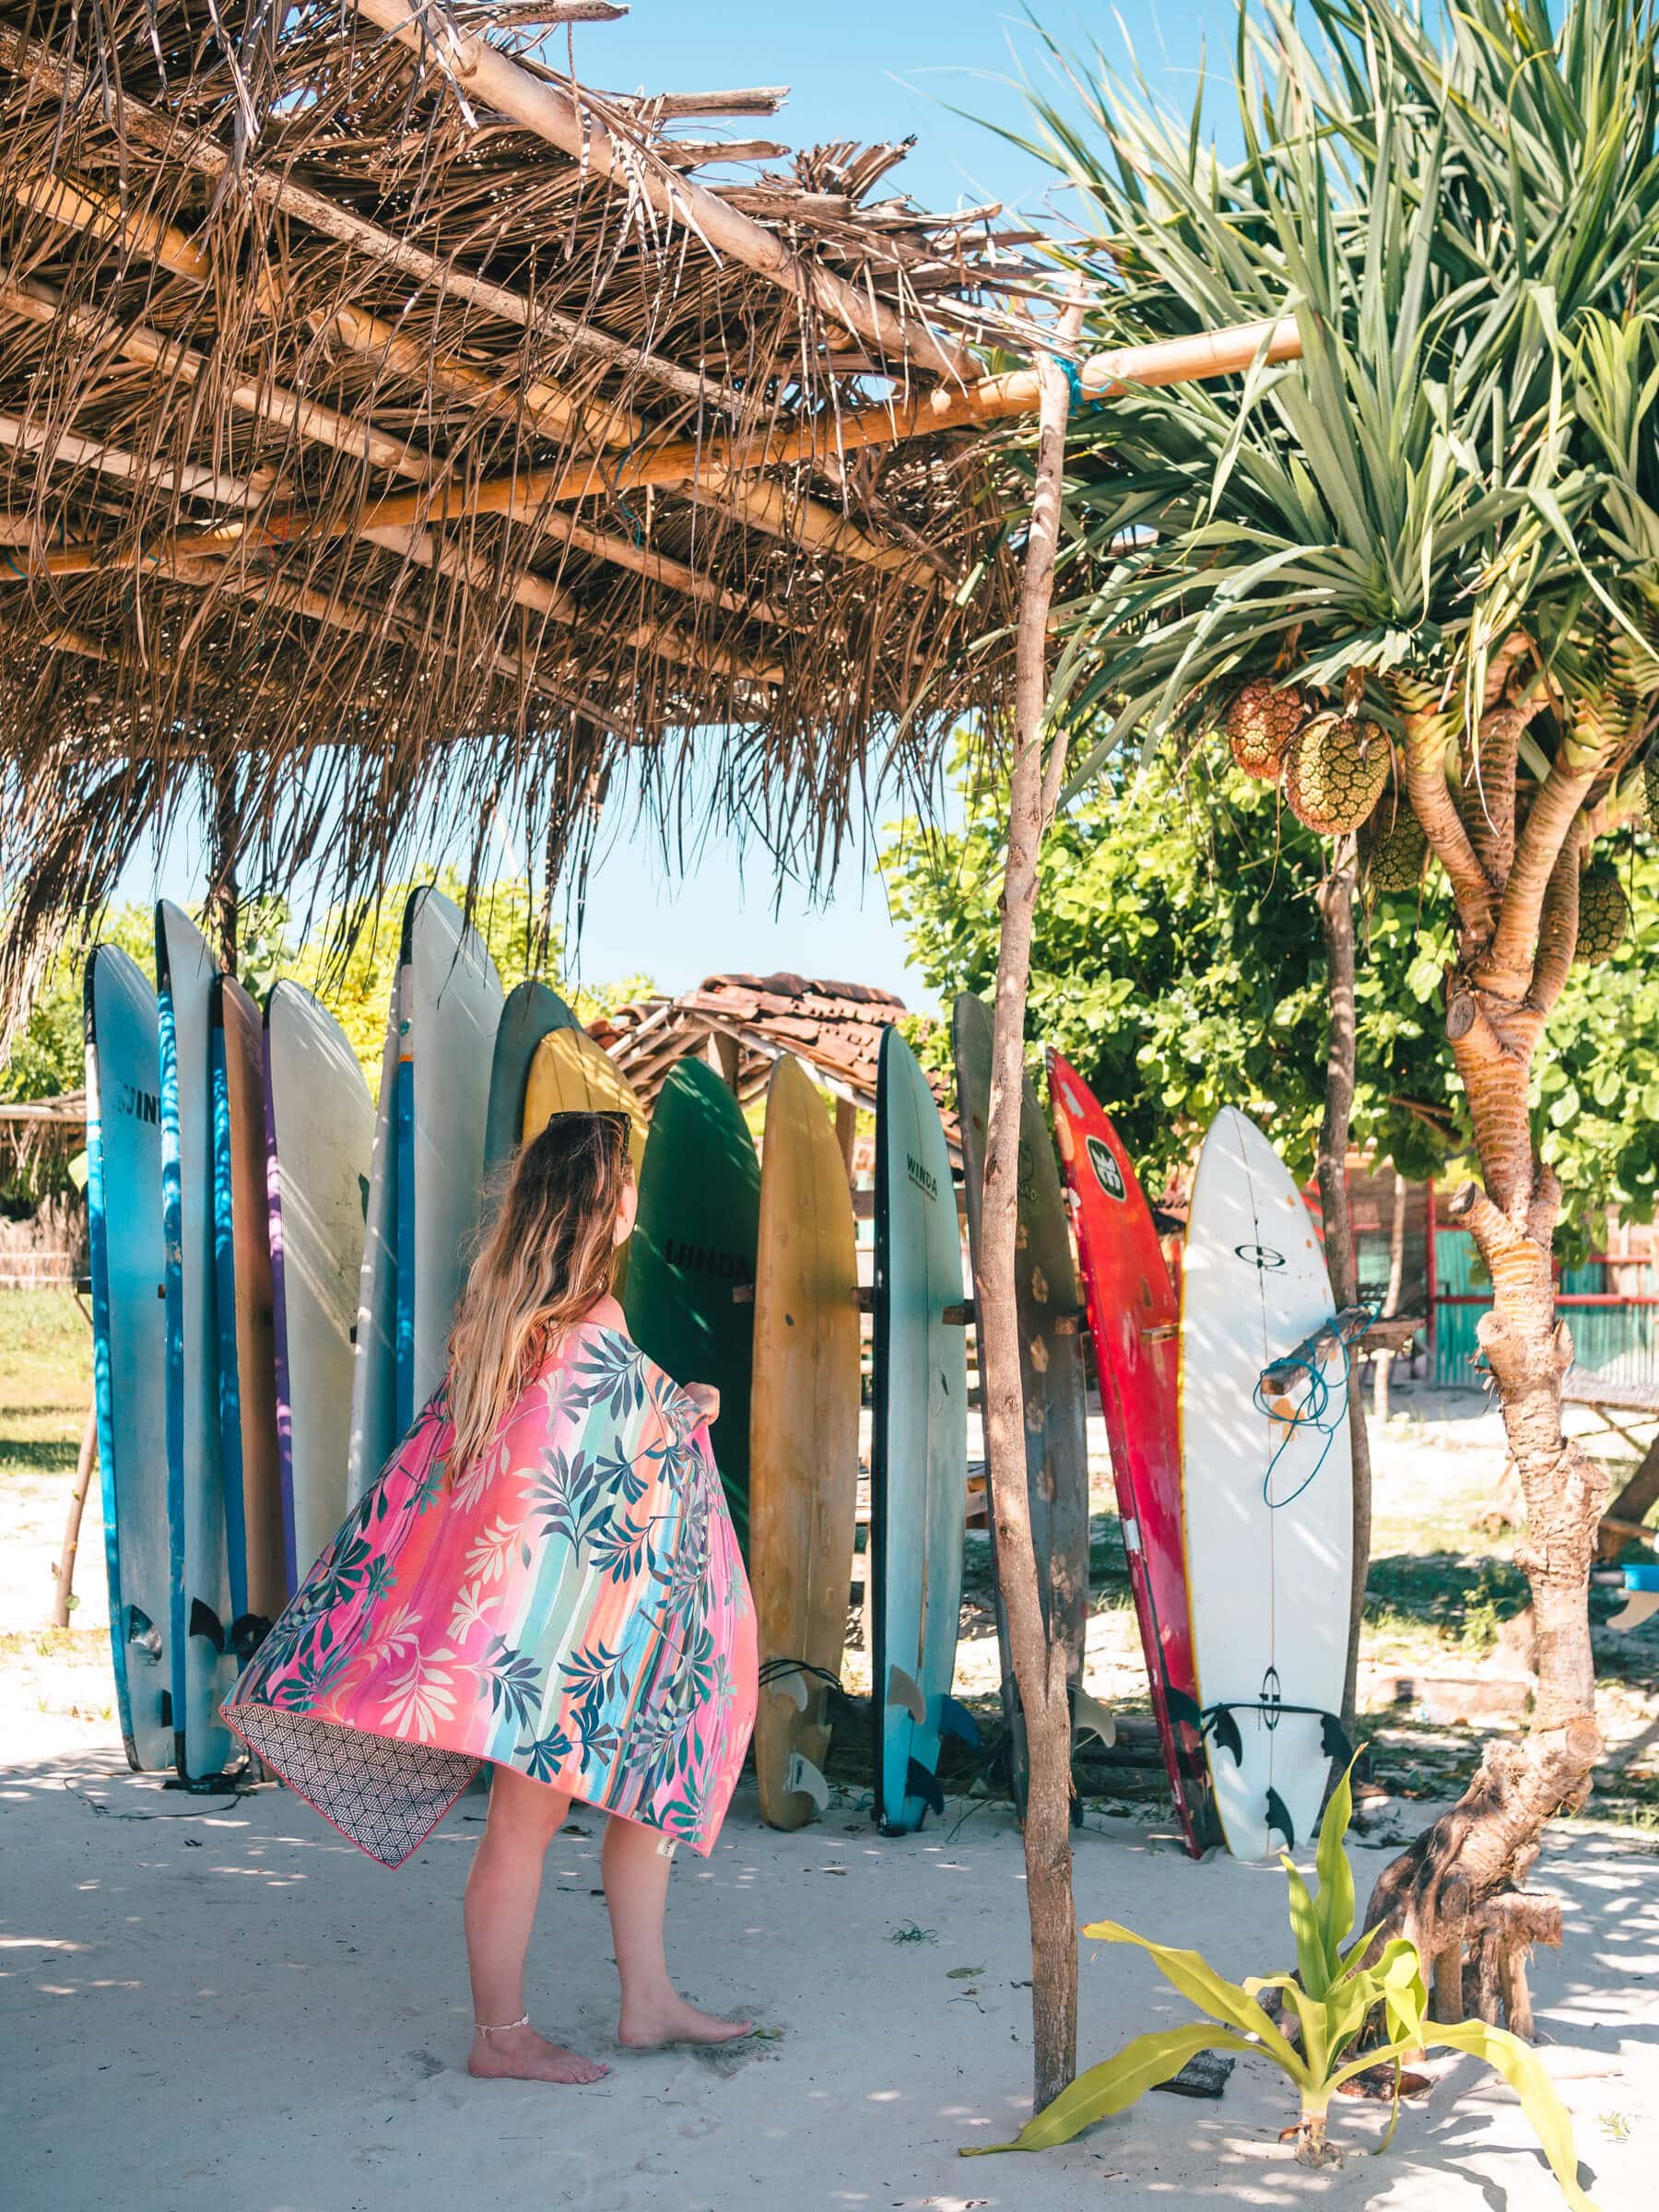 Follow along on our journey living in Kuta, Lombok for two months - Surfboards on Tanjung Aan Beach #lombok #kuta #indonesia #travelinspo #bucketlist